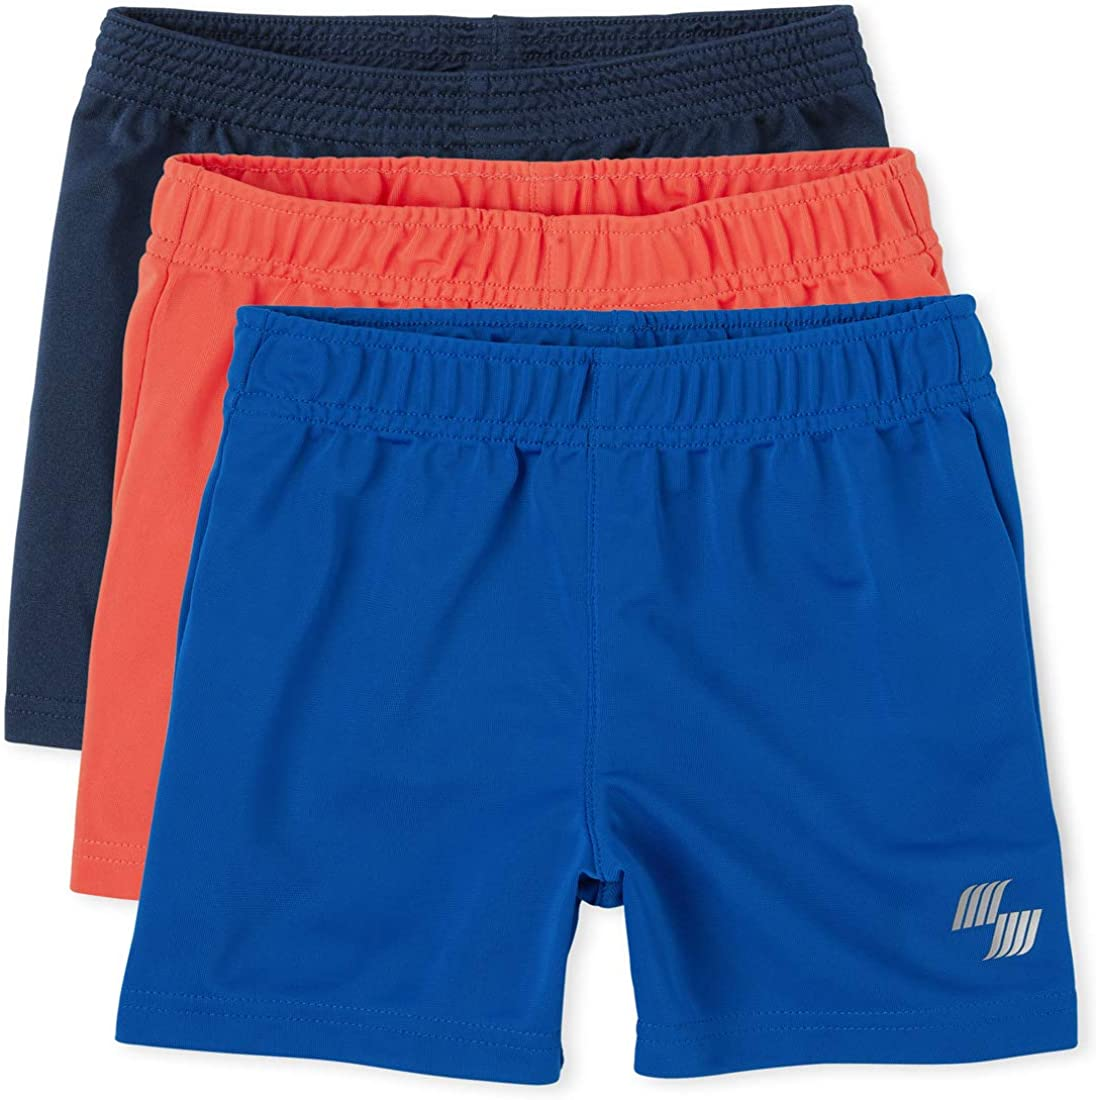 The Children's Place Toddler Boys Basketball Shorts 3-Pack